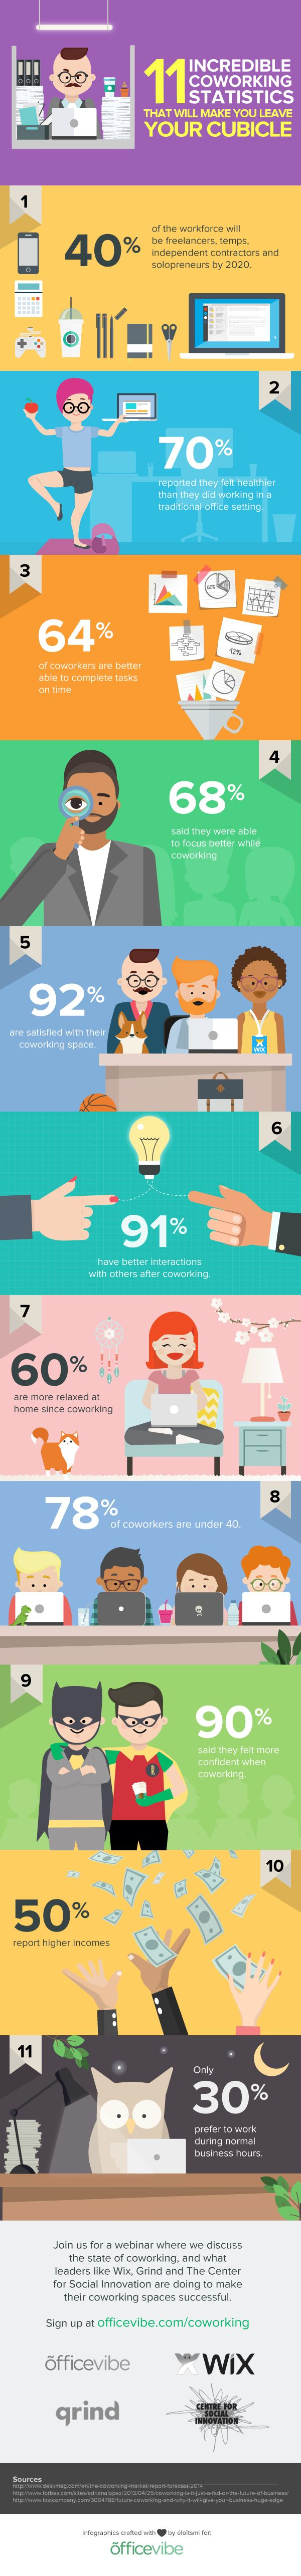 11 Incredible Coworking Statistics That Will Make You Leave Your Cubicle (Infographic)